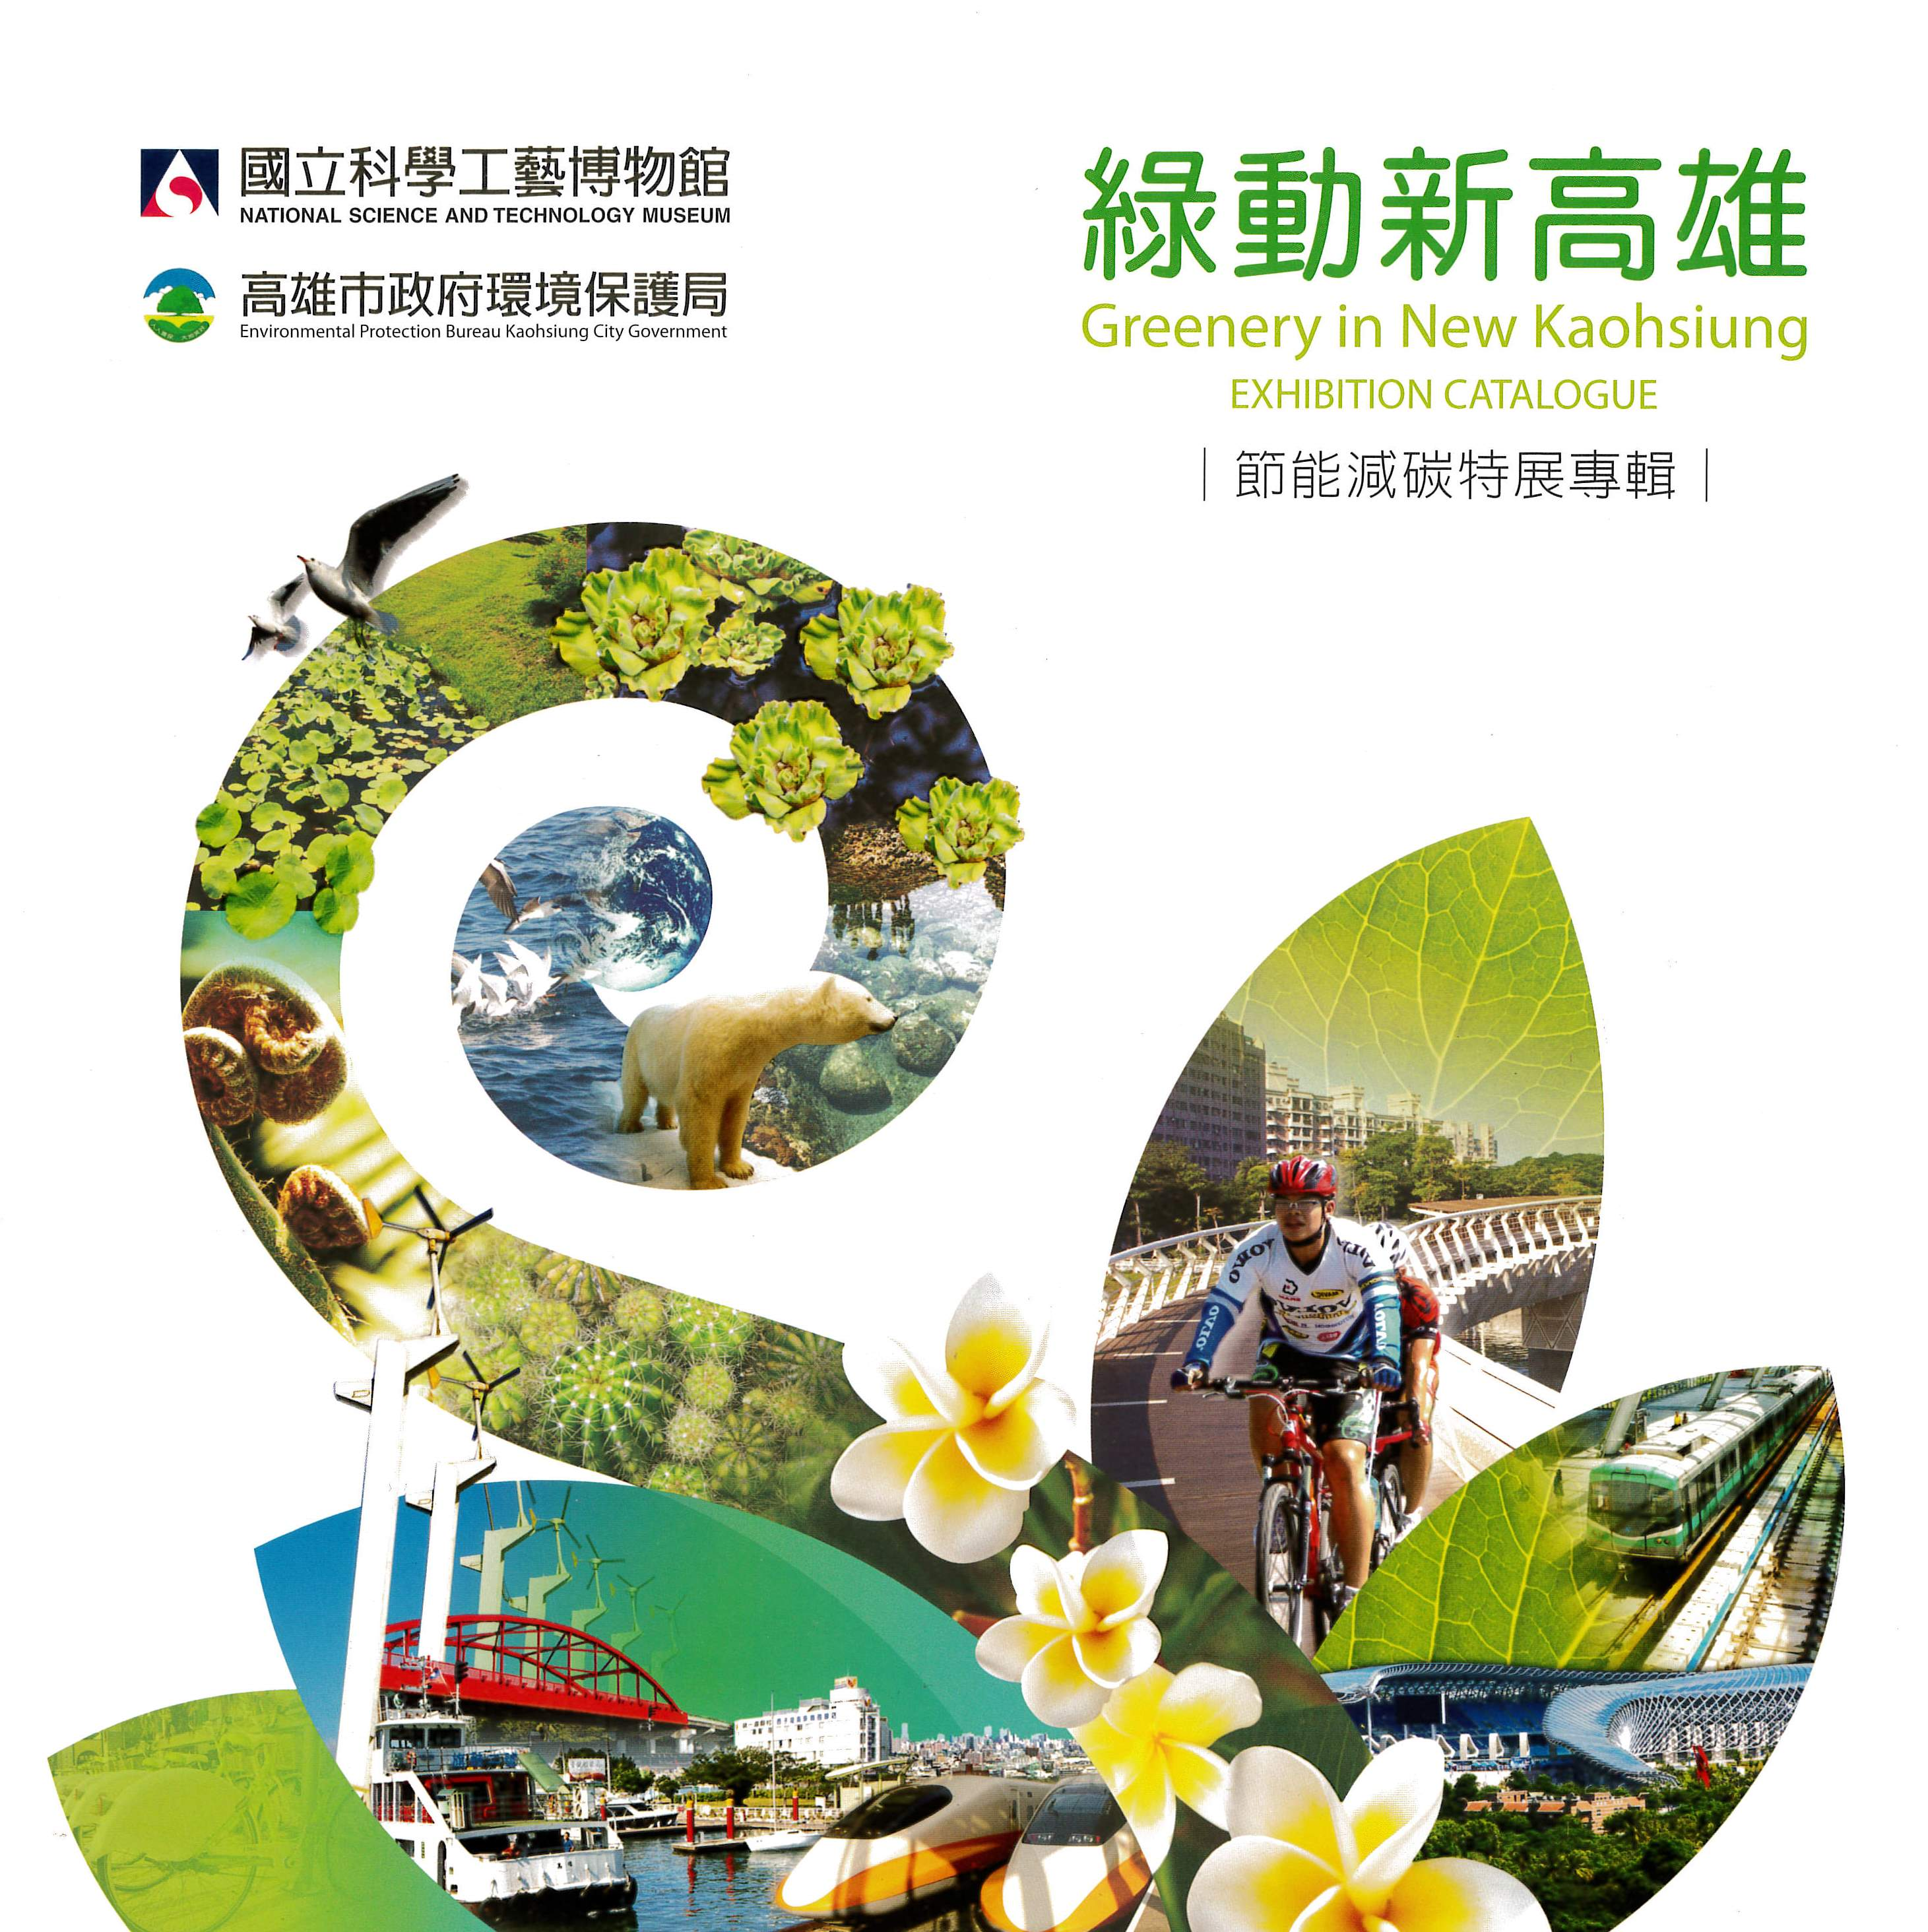 Greenery in New Kaohsiung-EXHIBITION CATALOGUE